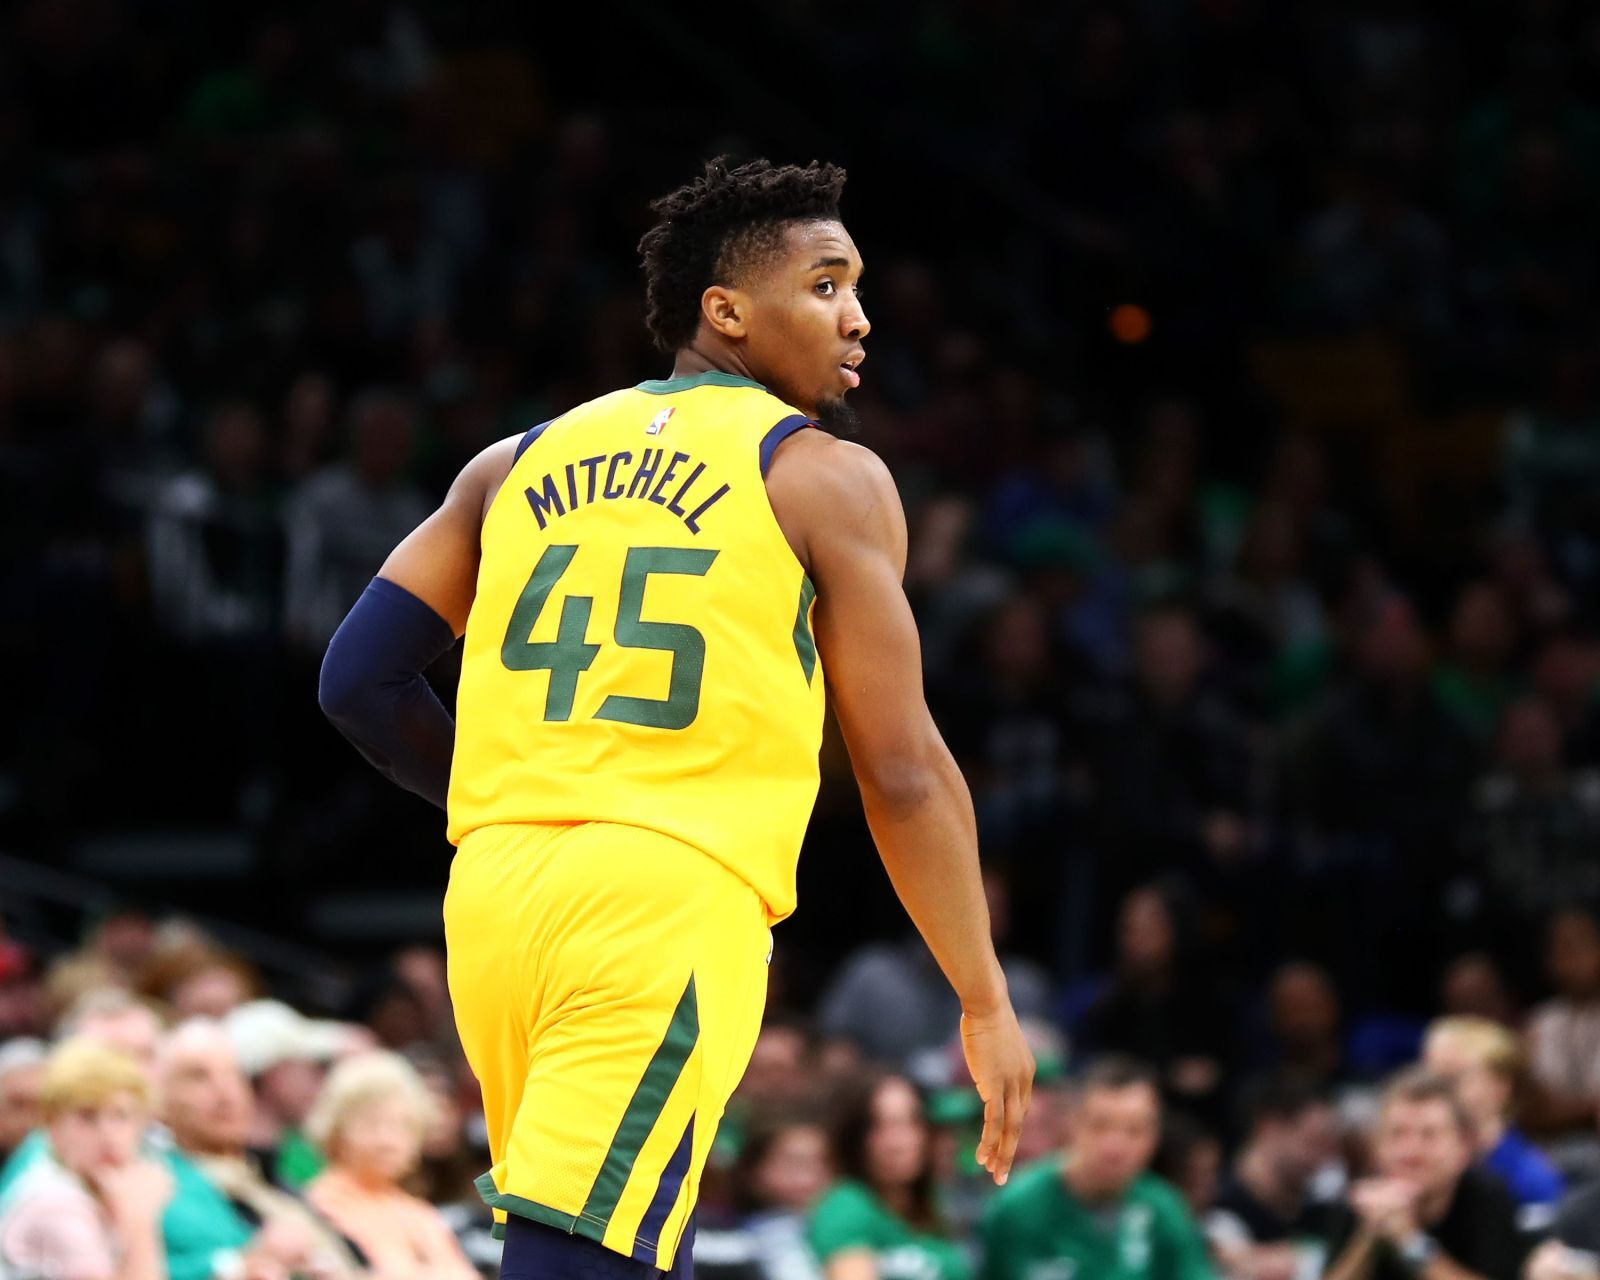 separation shoes 40b42 49fb4 Utah Jazz: Donovan Mitchell to play Wednesday vs. Nets